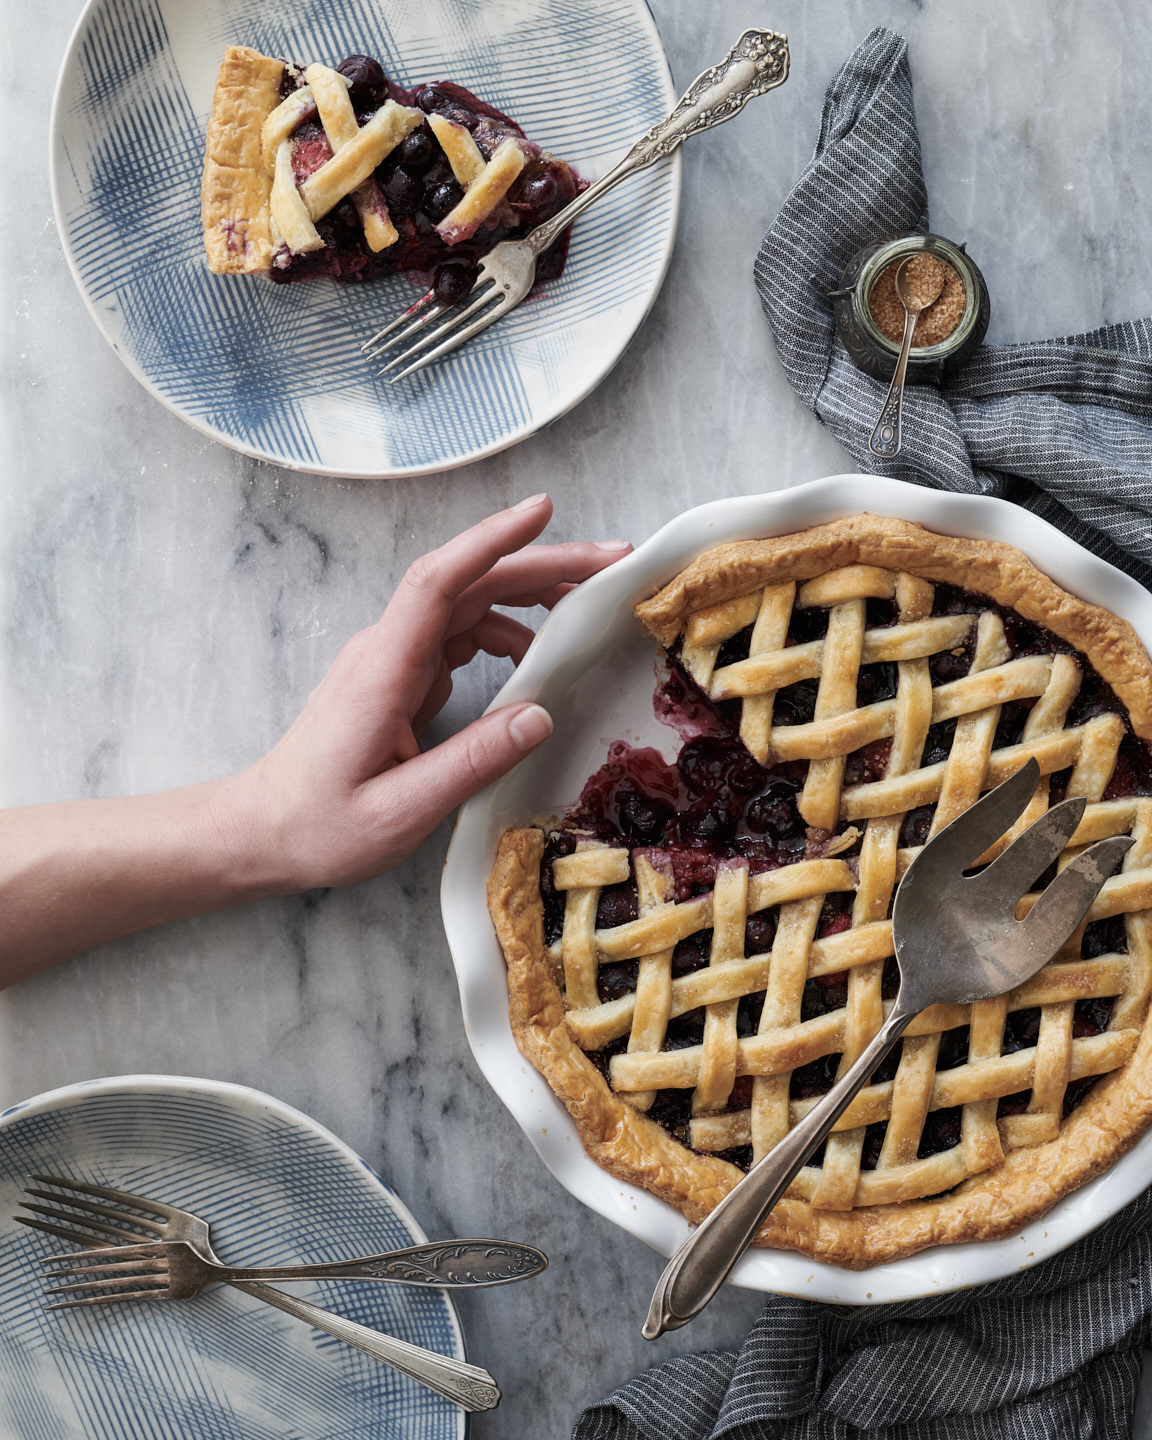 Baked Pie by Matthew Roharik Editorial Food Photographer Los Angeles